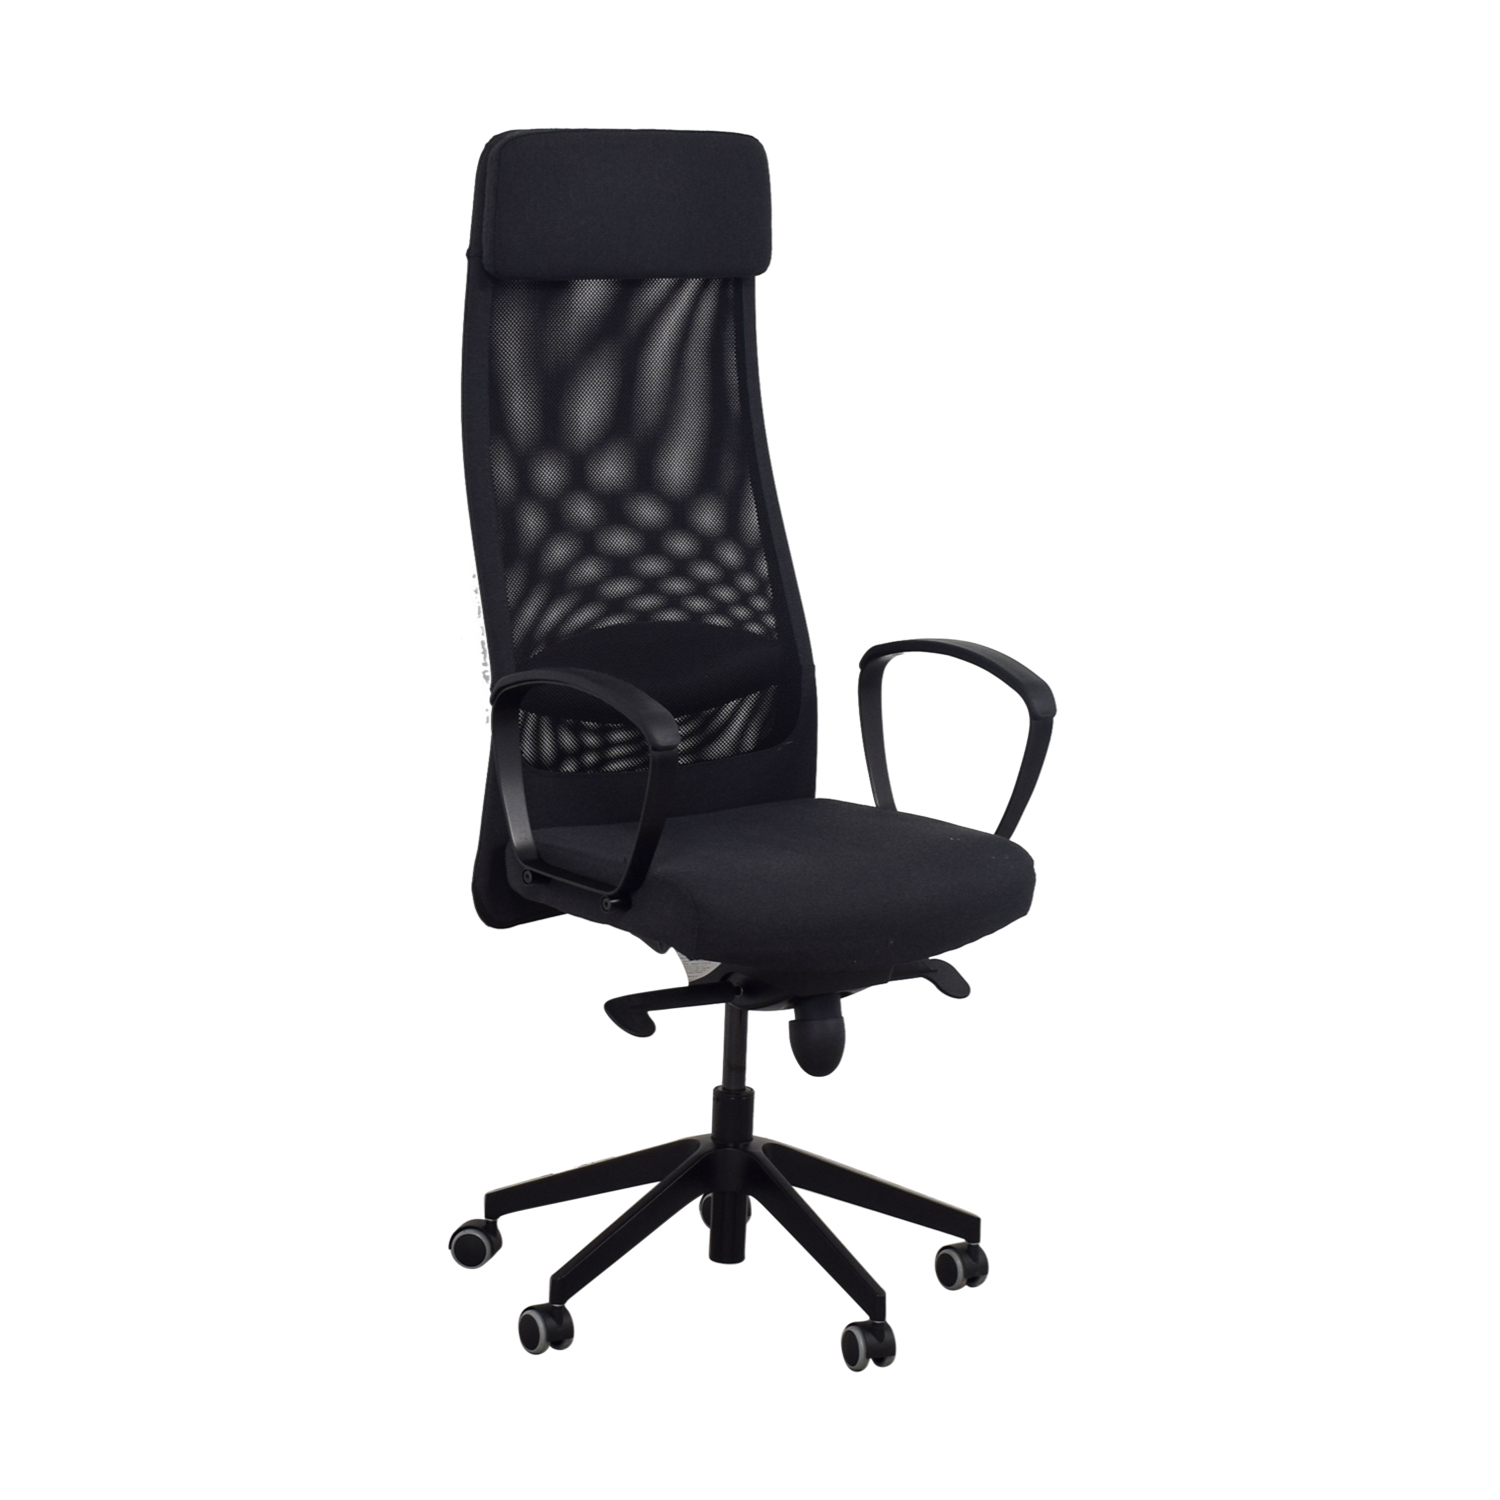 Ikea Black Chair 68 Off Ikea Ikea Black Office Chair Chairs